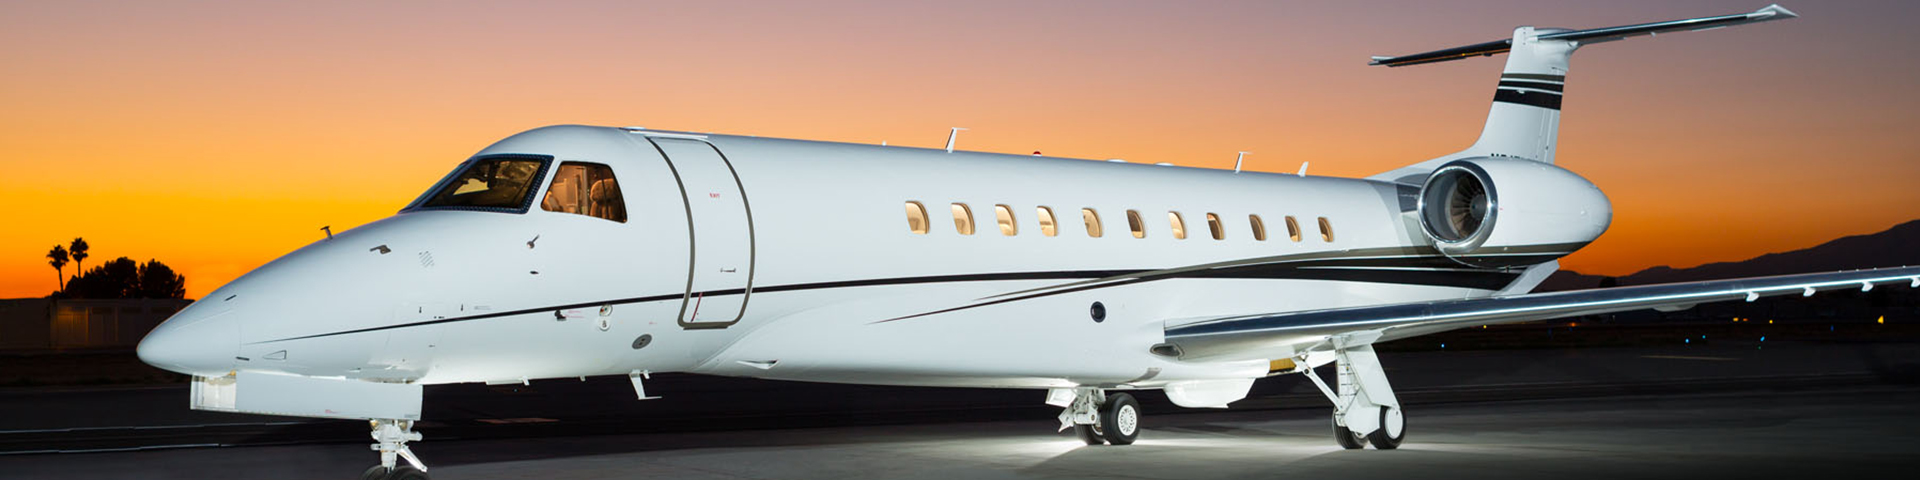 Legacy 600 Private Jet1 - Private Jet Charter Cost